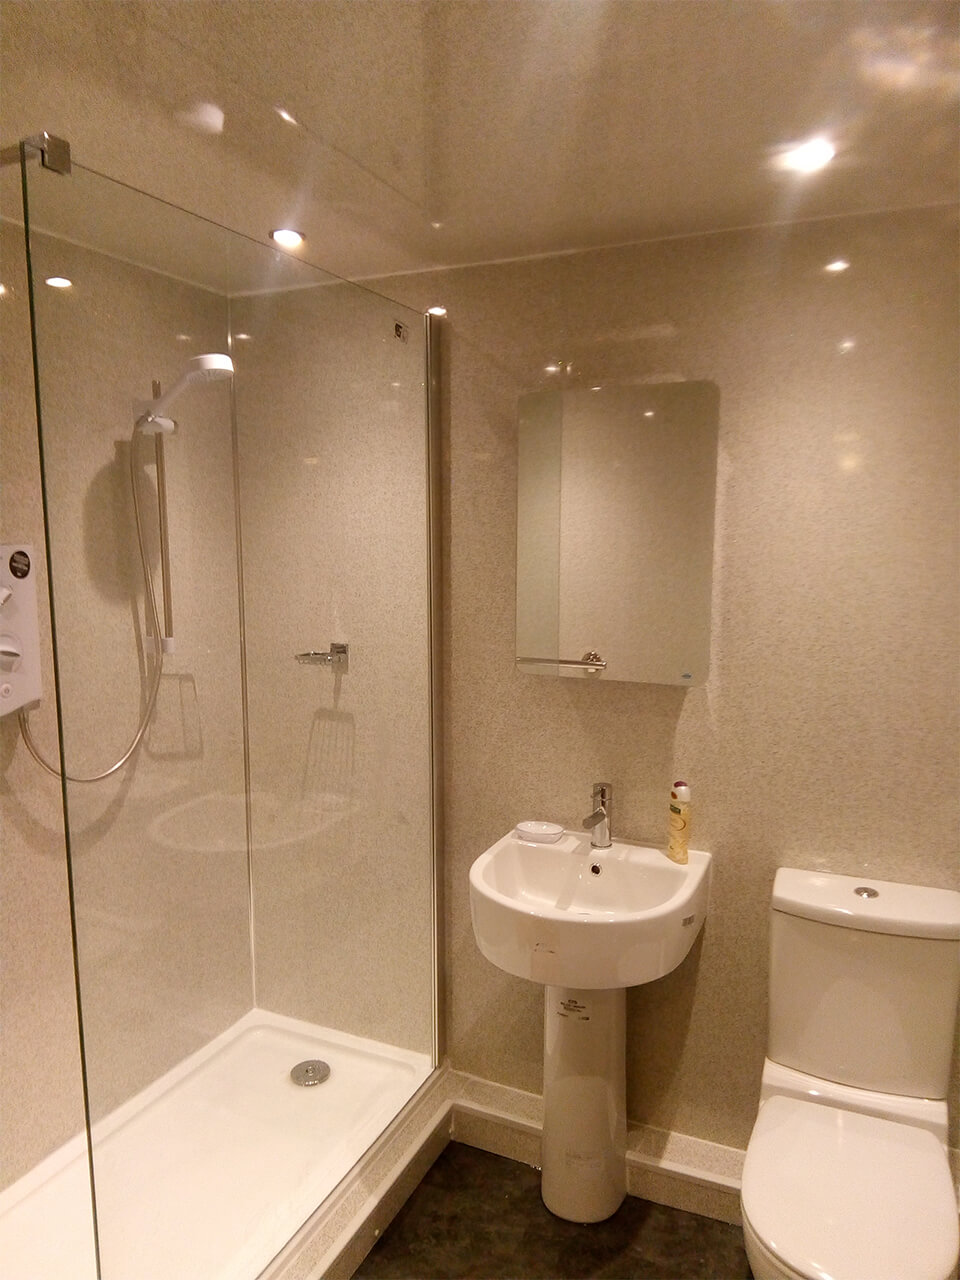 ashmore_plumbing_building_blackpool_bathroom_installation_16